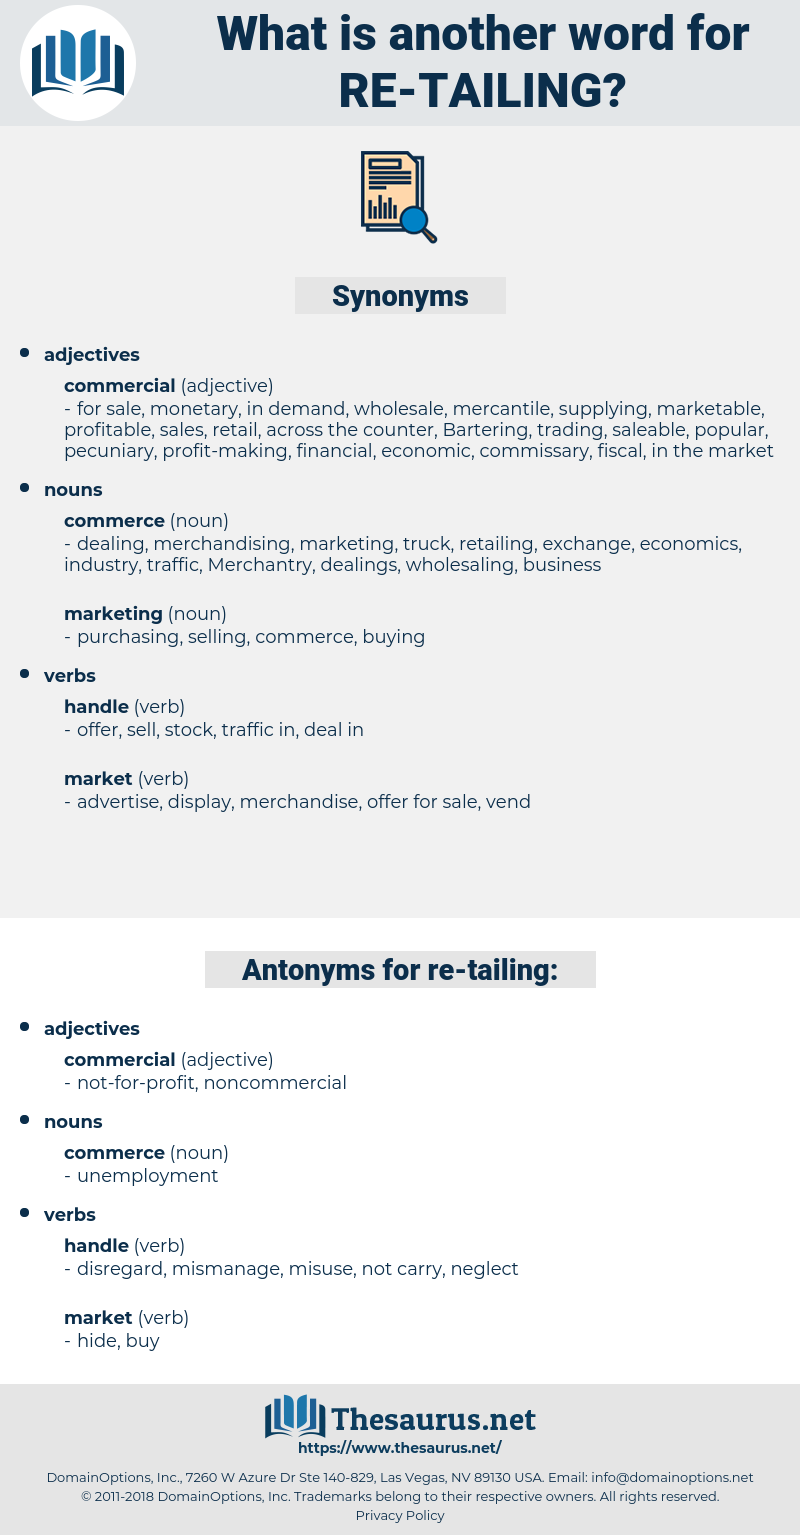 re tailing, synonym re tailing, another word for re tailing, words like re tailing, thesaurus re tailing